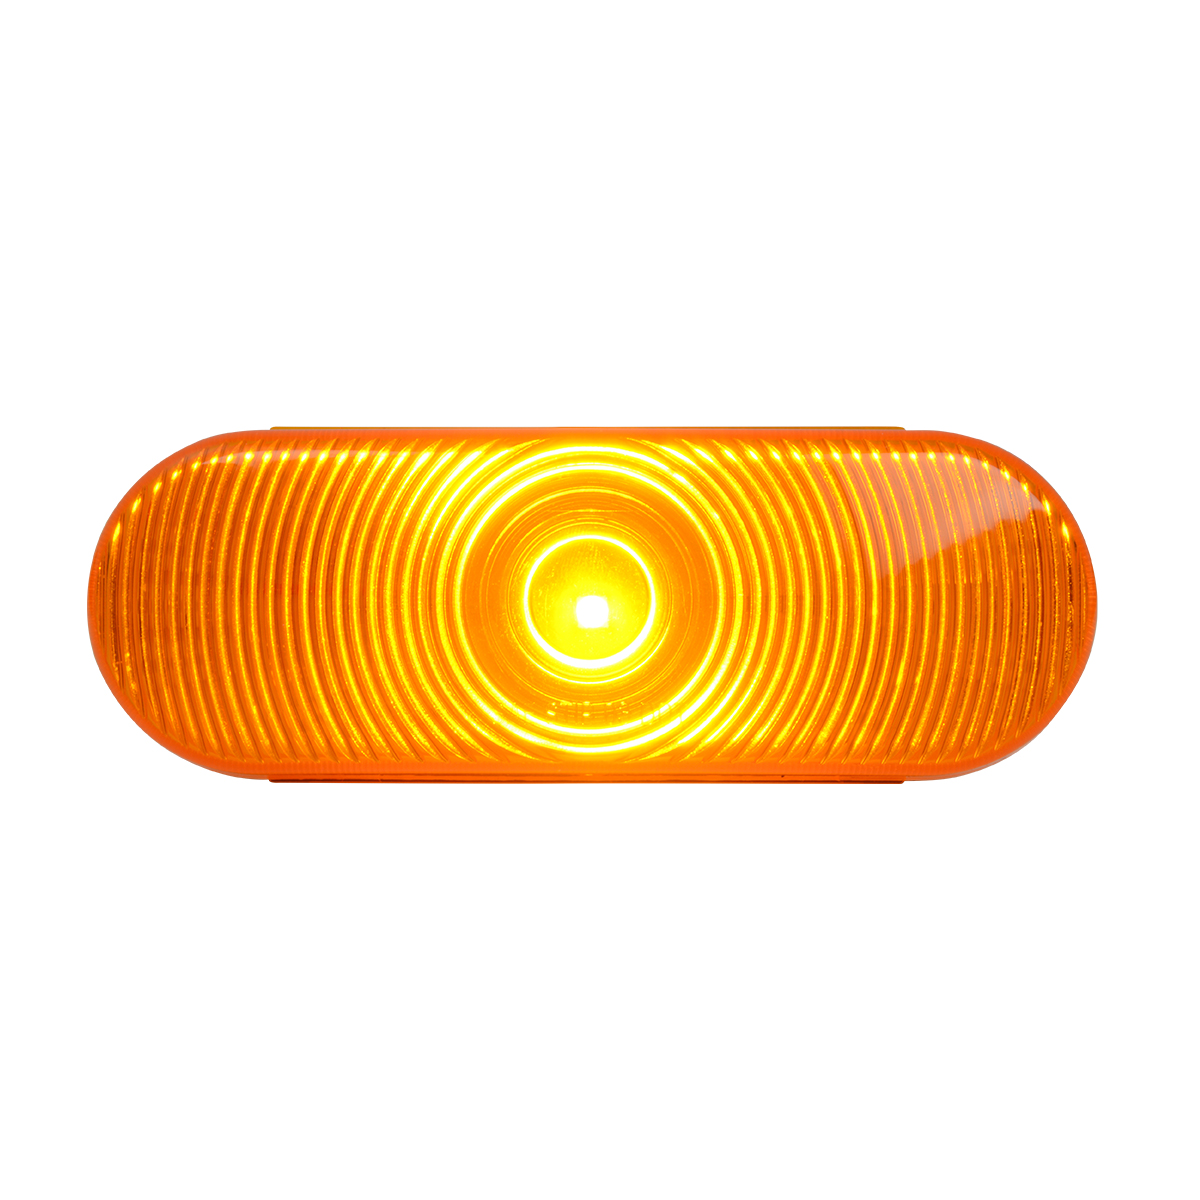 75850 Oval Single High Power LED Sealed Light